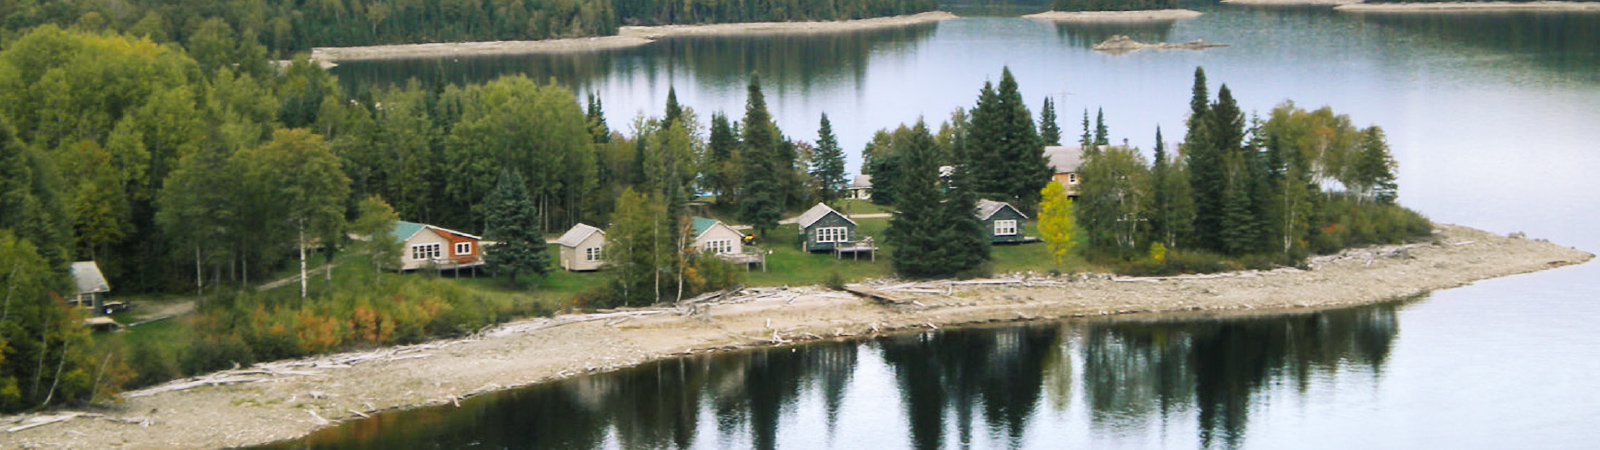 Aerial view of Horwood Lake Lodge